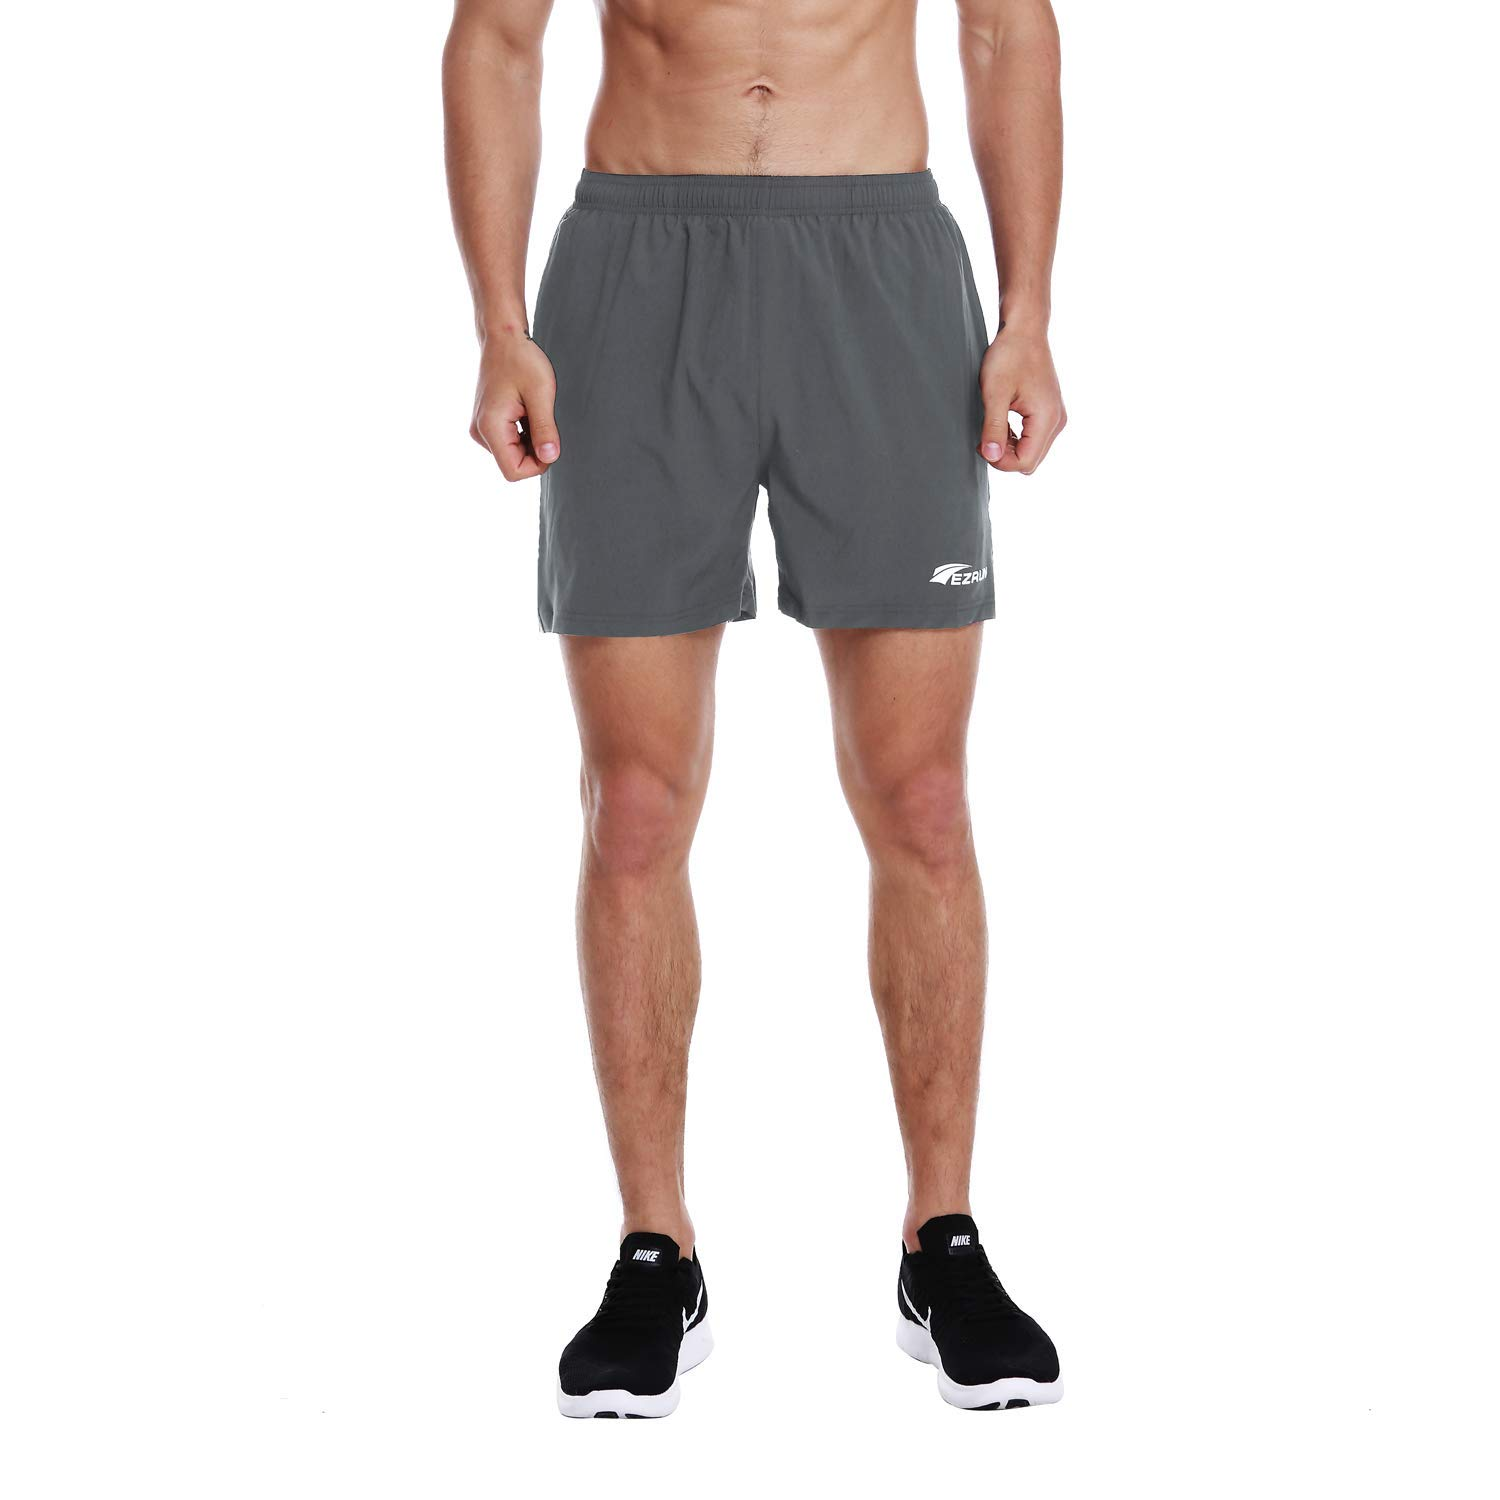 EZRUN Men's 5 Inches Running Workout Shorts Quick Dry Lightweight Athletic Shorts with Liner Zipper Pockets,Grey,XL by EZRUN